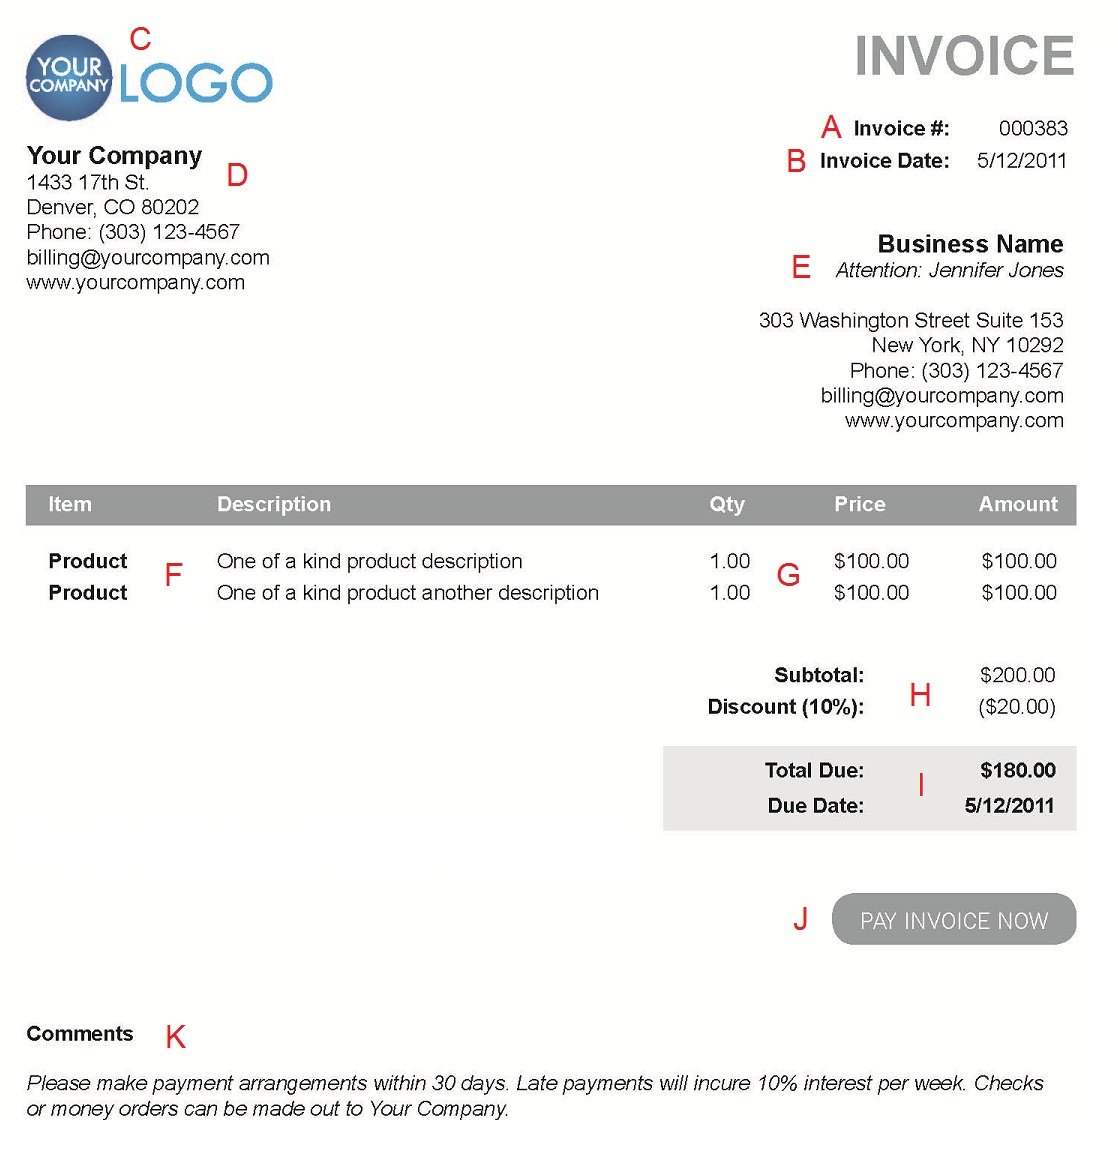 Coolmathgamesus  Prepossessing The  Different Sections Of An Electronic Payment Invoice With Fetching A  With Astounding Template Excel Invoice Also Proforma Invoice Excel Template In Addition Blank Invoice Template Microsoft Word And Proforma Invoices Definition As Well As Credit Sales Invoice Additionally Basic Invoice Layout From Paysimplecom With Coolmathgamesus  Fetching The  Different Sections Of An Electronic Payment Invoice With Astounding A  And Prepossessing Template Excel Invoice Also Proforma Invoice Excel Template In Addition Blank Invoice Template Microsoft Word From Paysimplecom